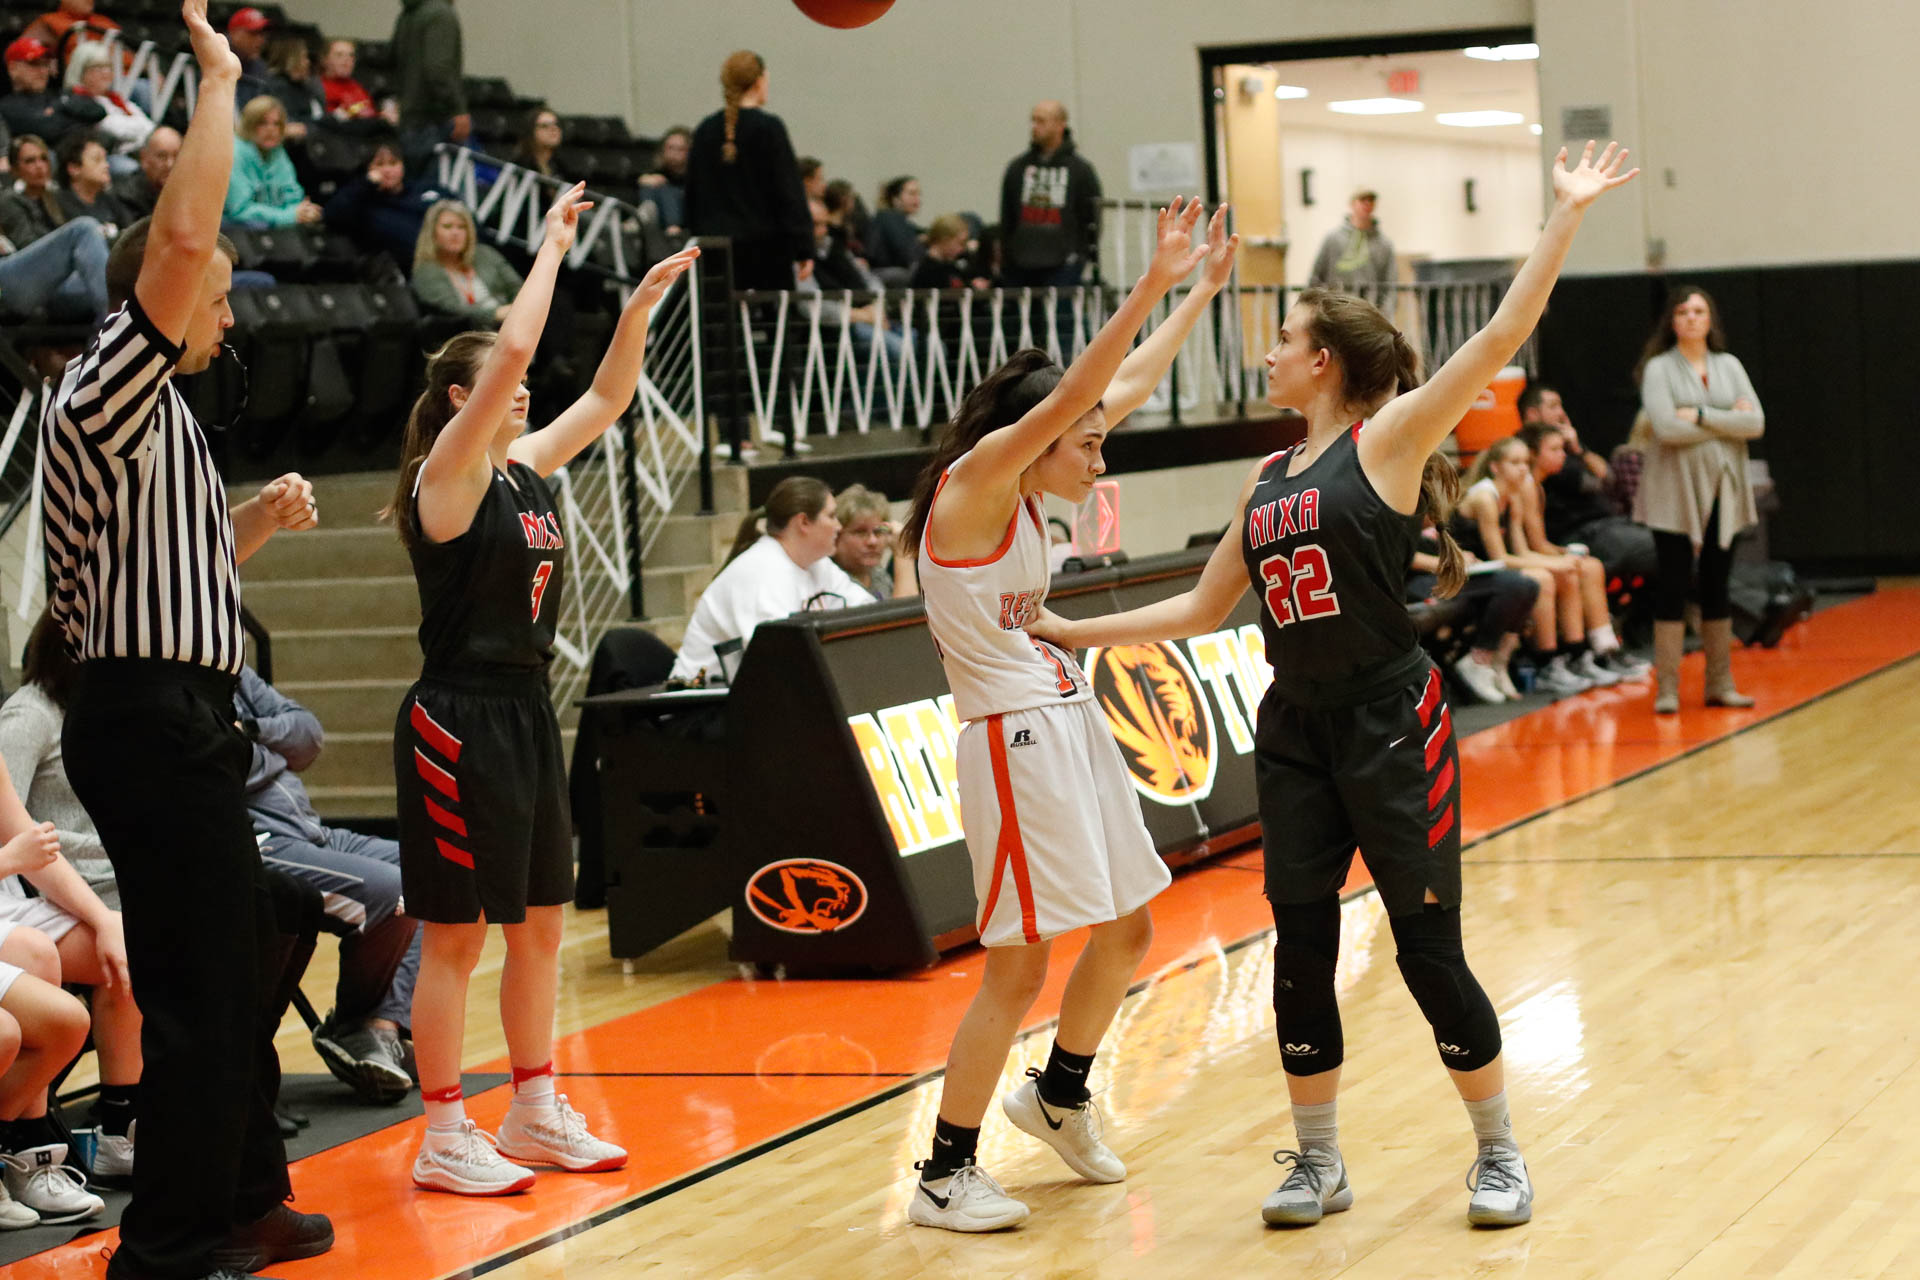 Photos:  Freshman Girls Basketball Vs Nixa